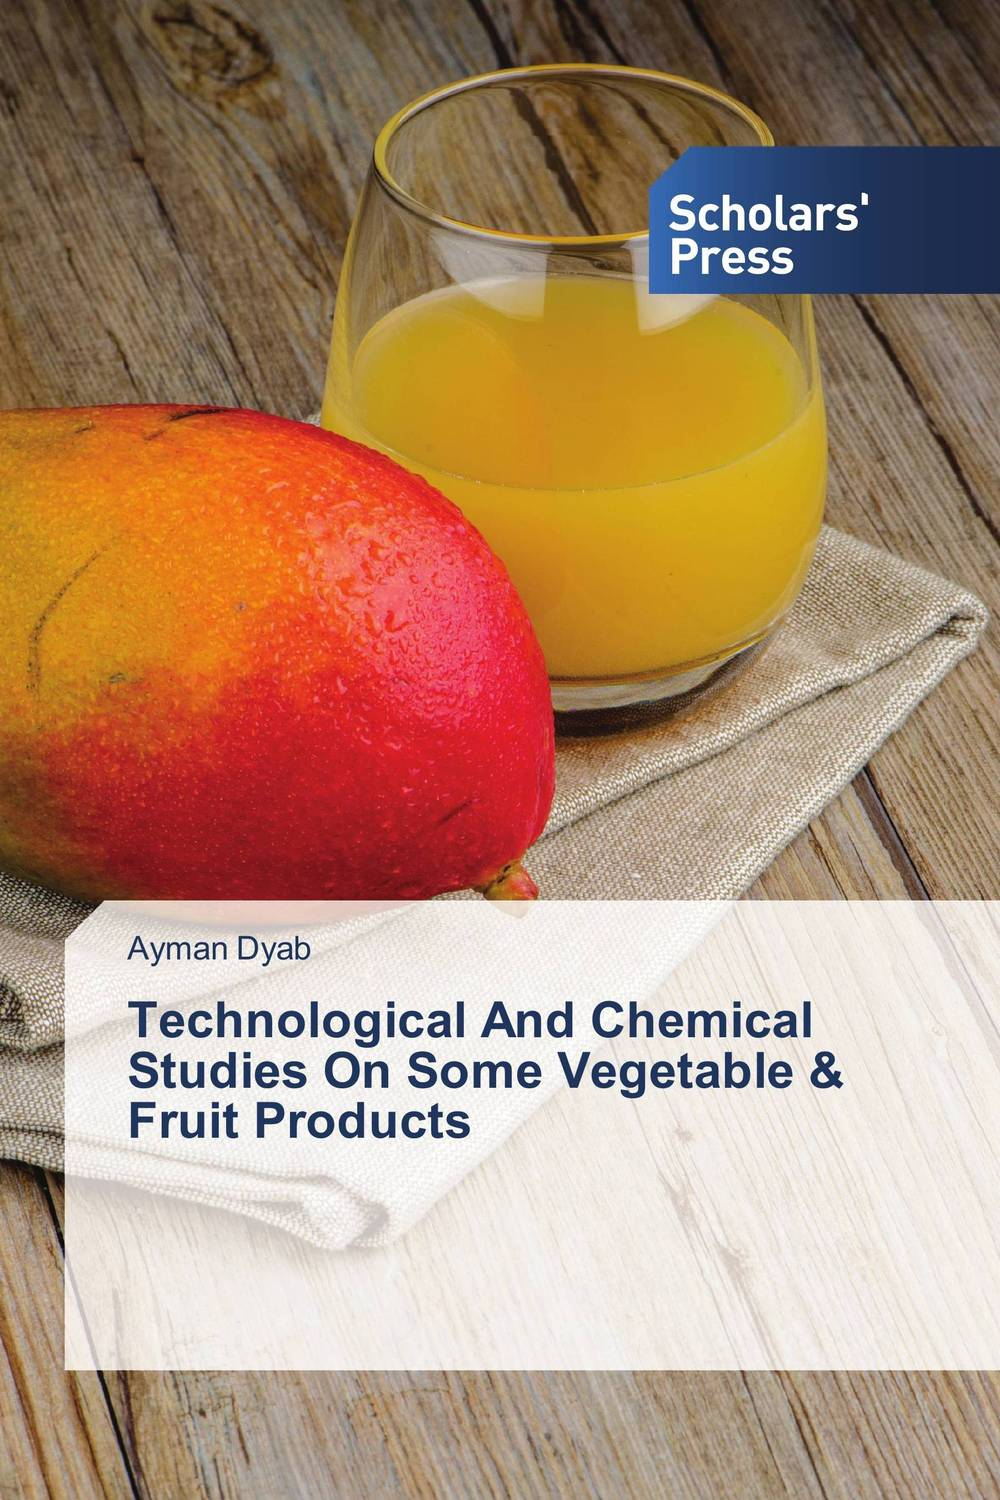 Technological And Chemical Studies On Some Vegetable & Fruit Products juicy fruit